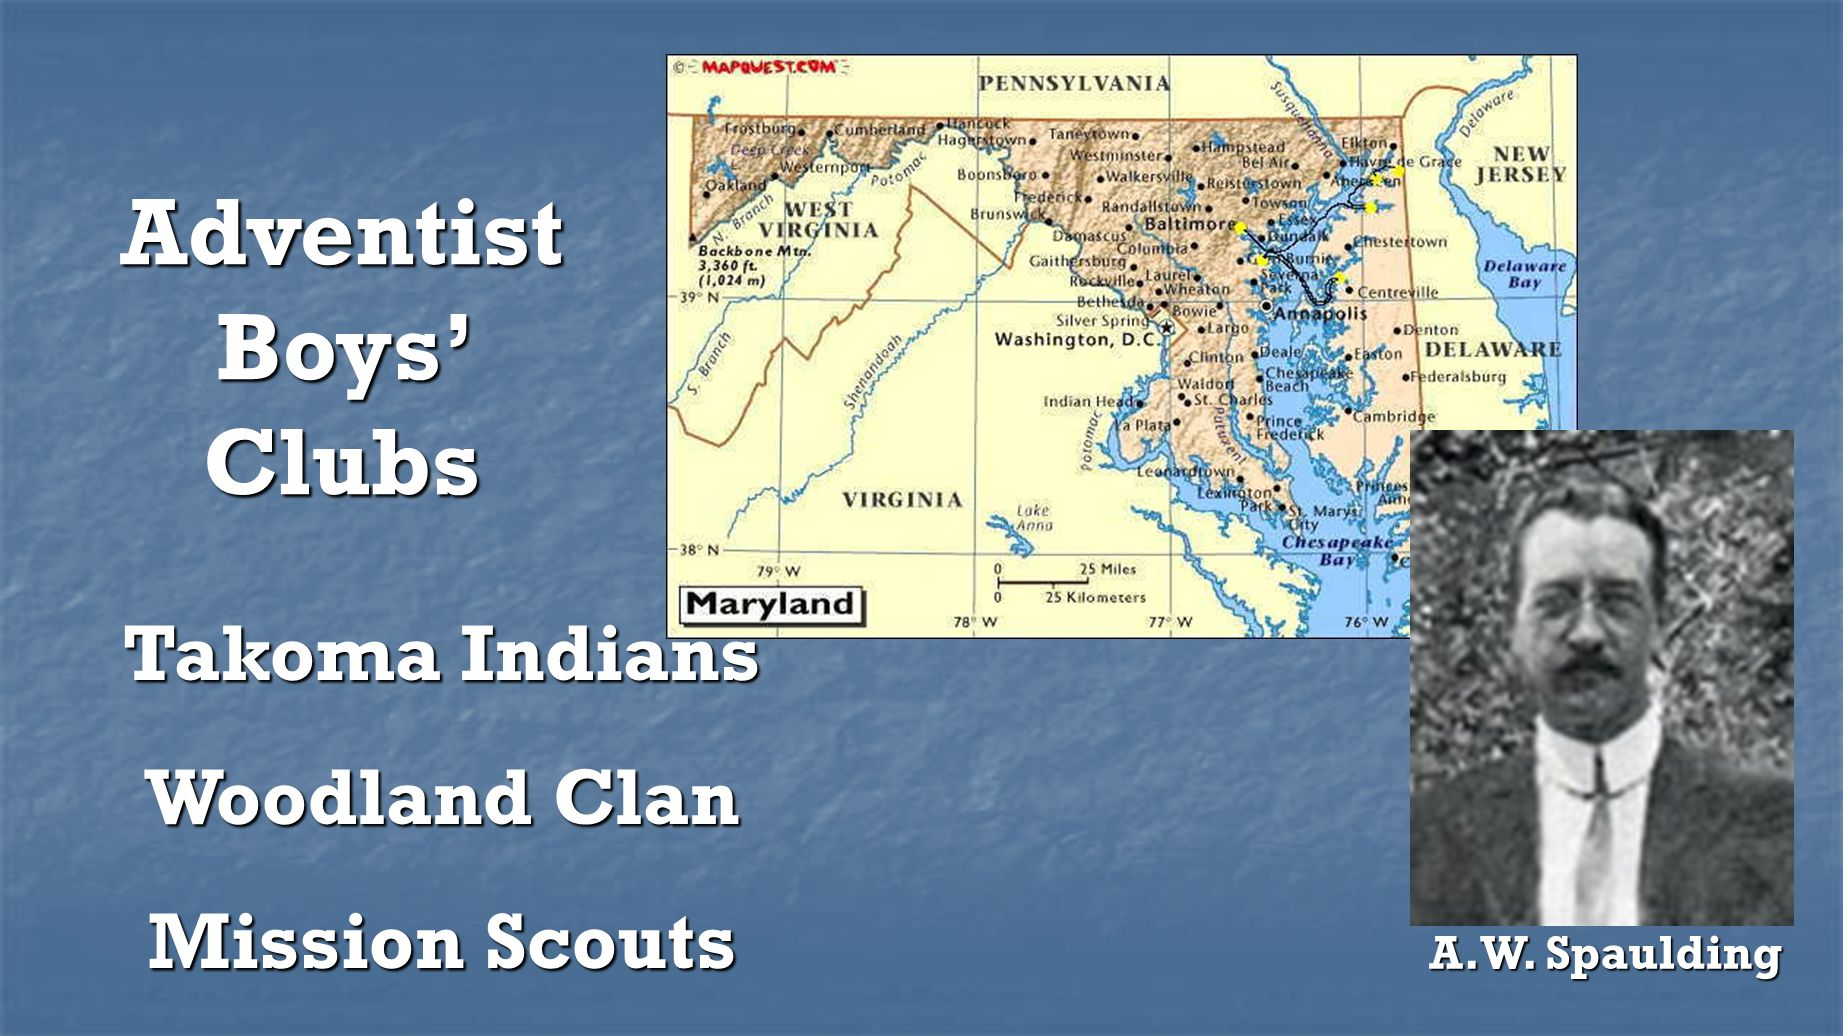 Adventist Boys' Clubs Takoma Indians Woodland Clan Mission Scouts